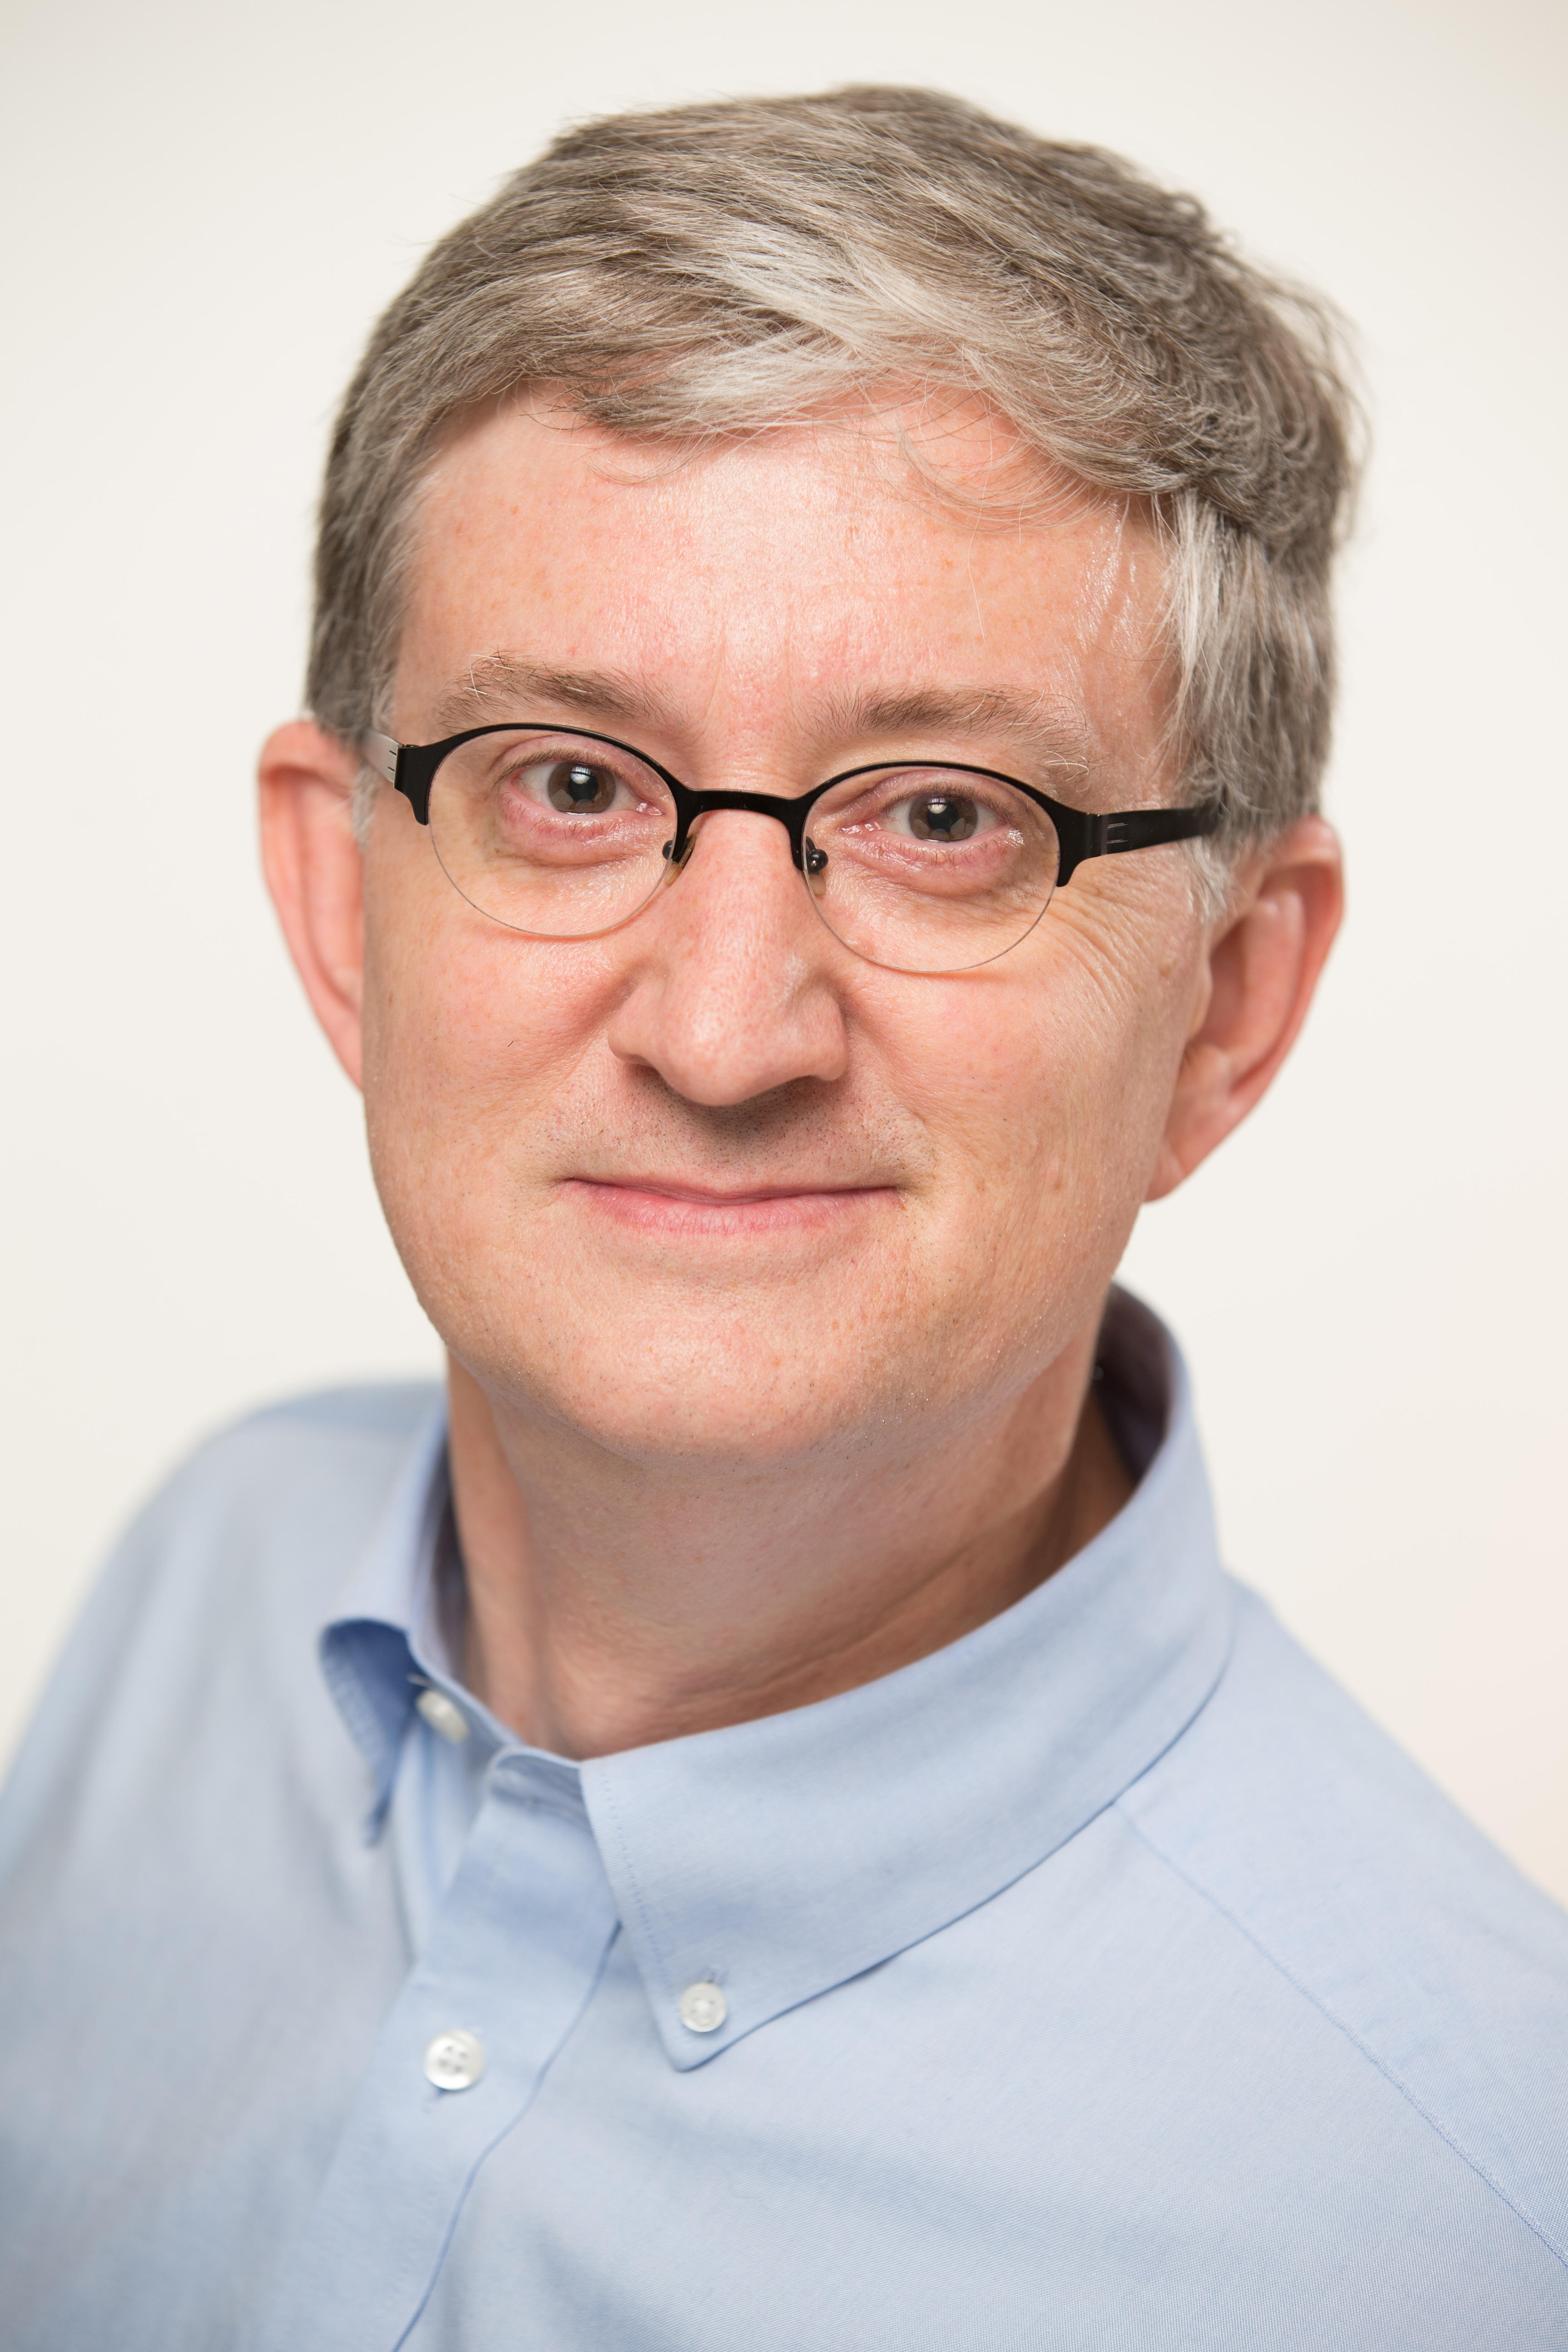 Princeton professor and Offchain Labs co-founder Ed Felten